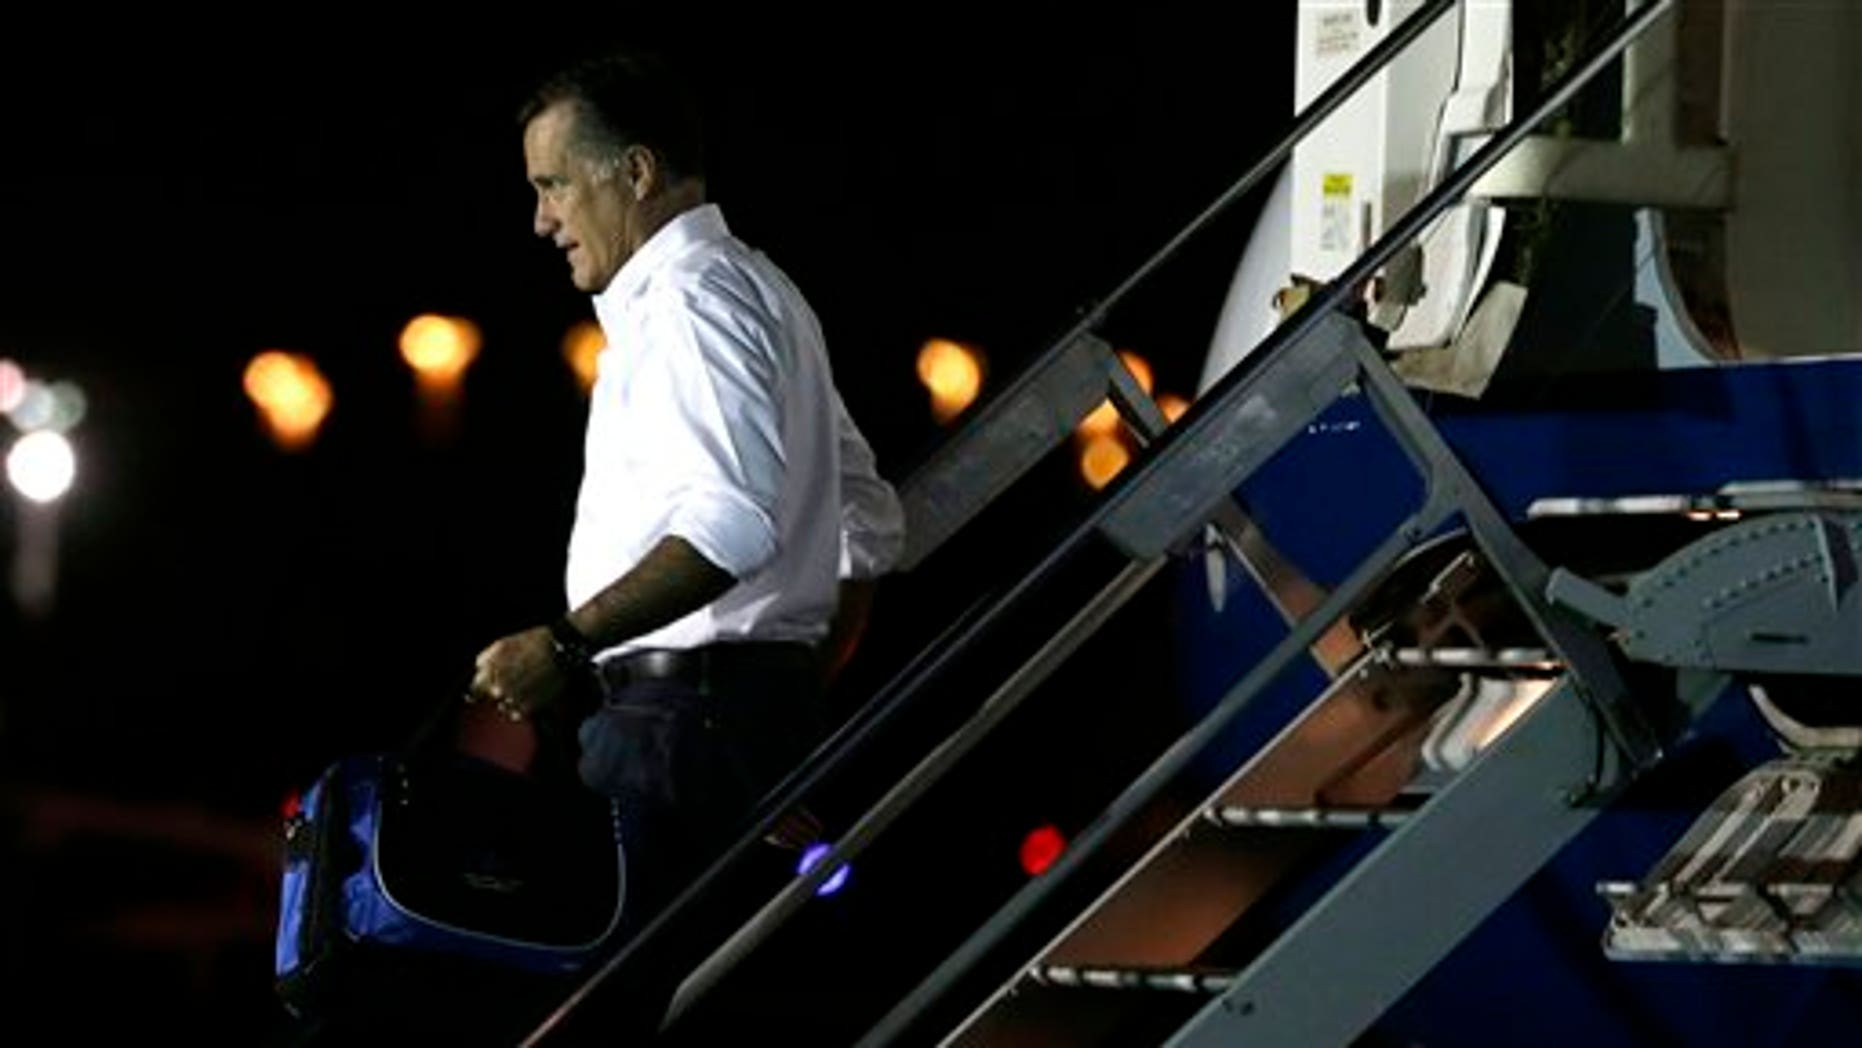 Sept. 11, 2012: Republican presidential candidate and former Massachusetts Gov. Mitt Romney arrives in Jacksonville, Fla.